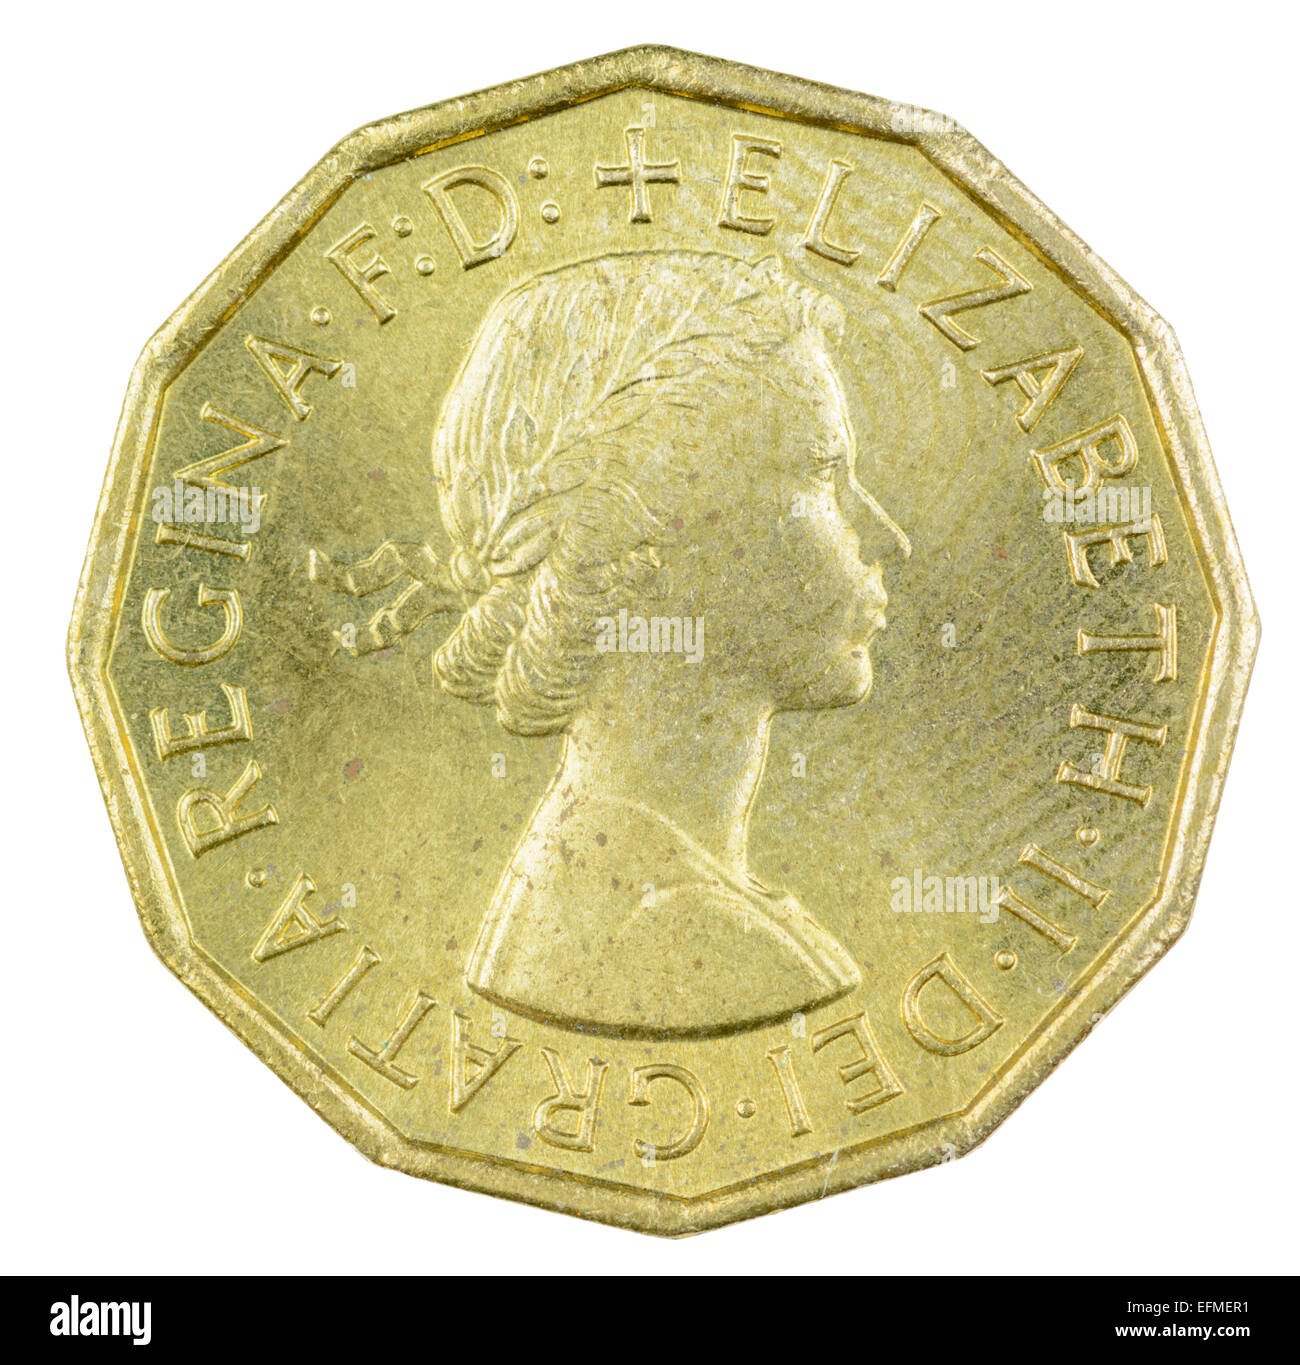 3d. Closeup of the head side of a gold coloured 1967 Threepenny piece coin on a white background. - Stock Image